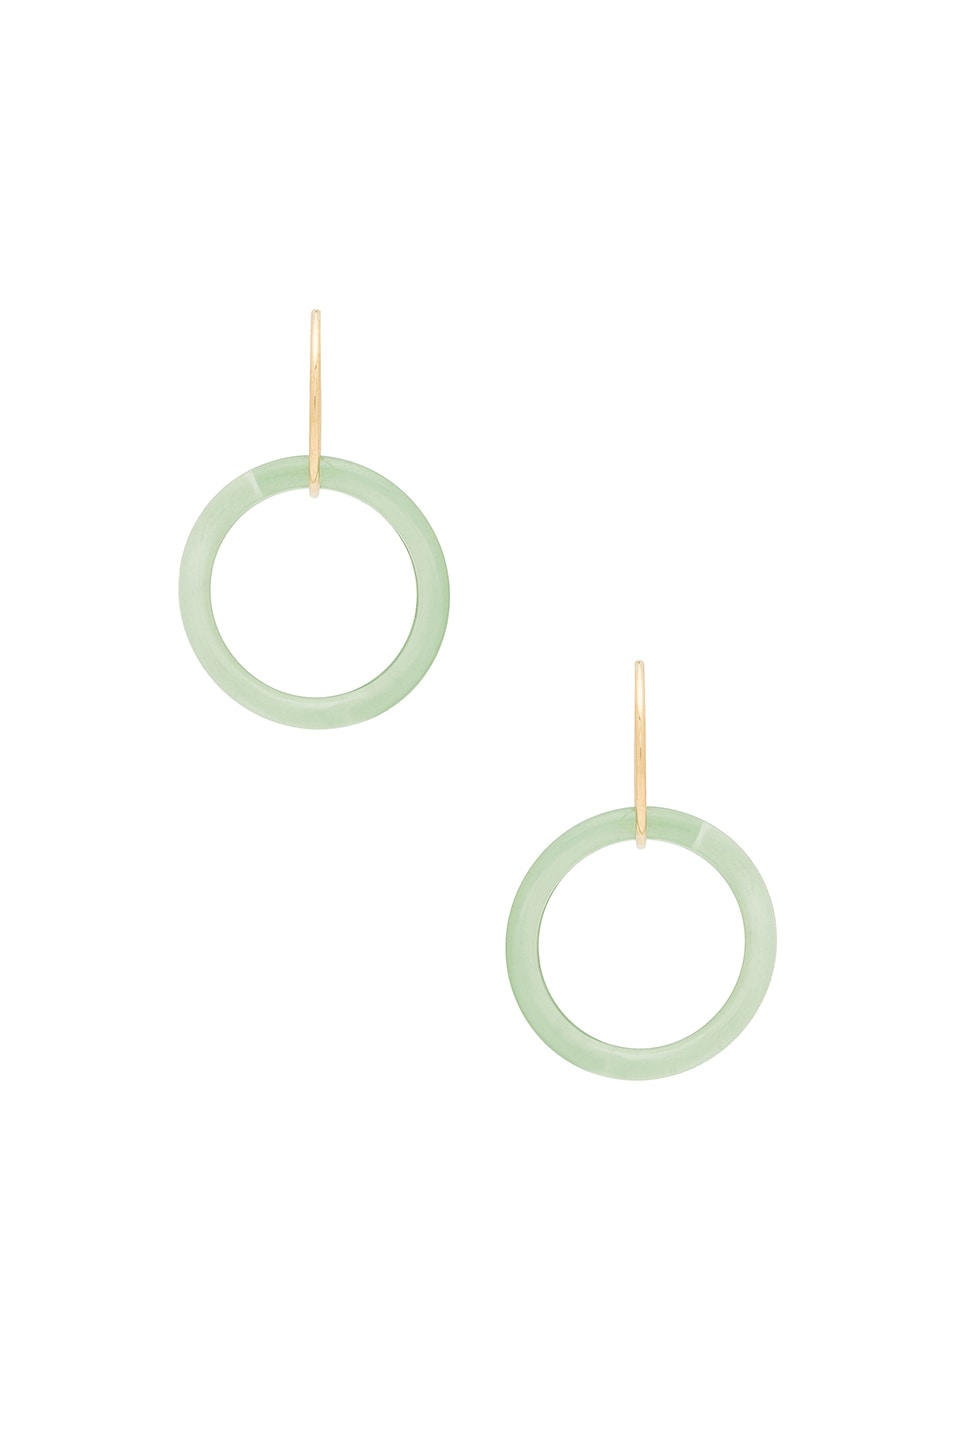 PARADIGM ACRYLIC RING HOOPS